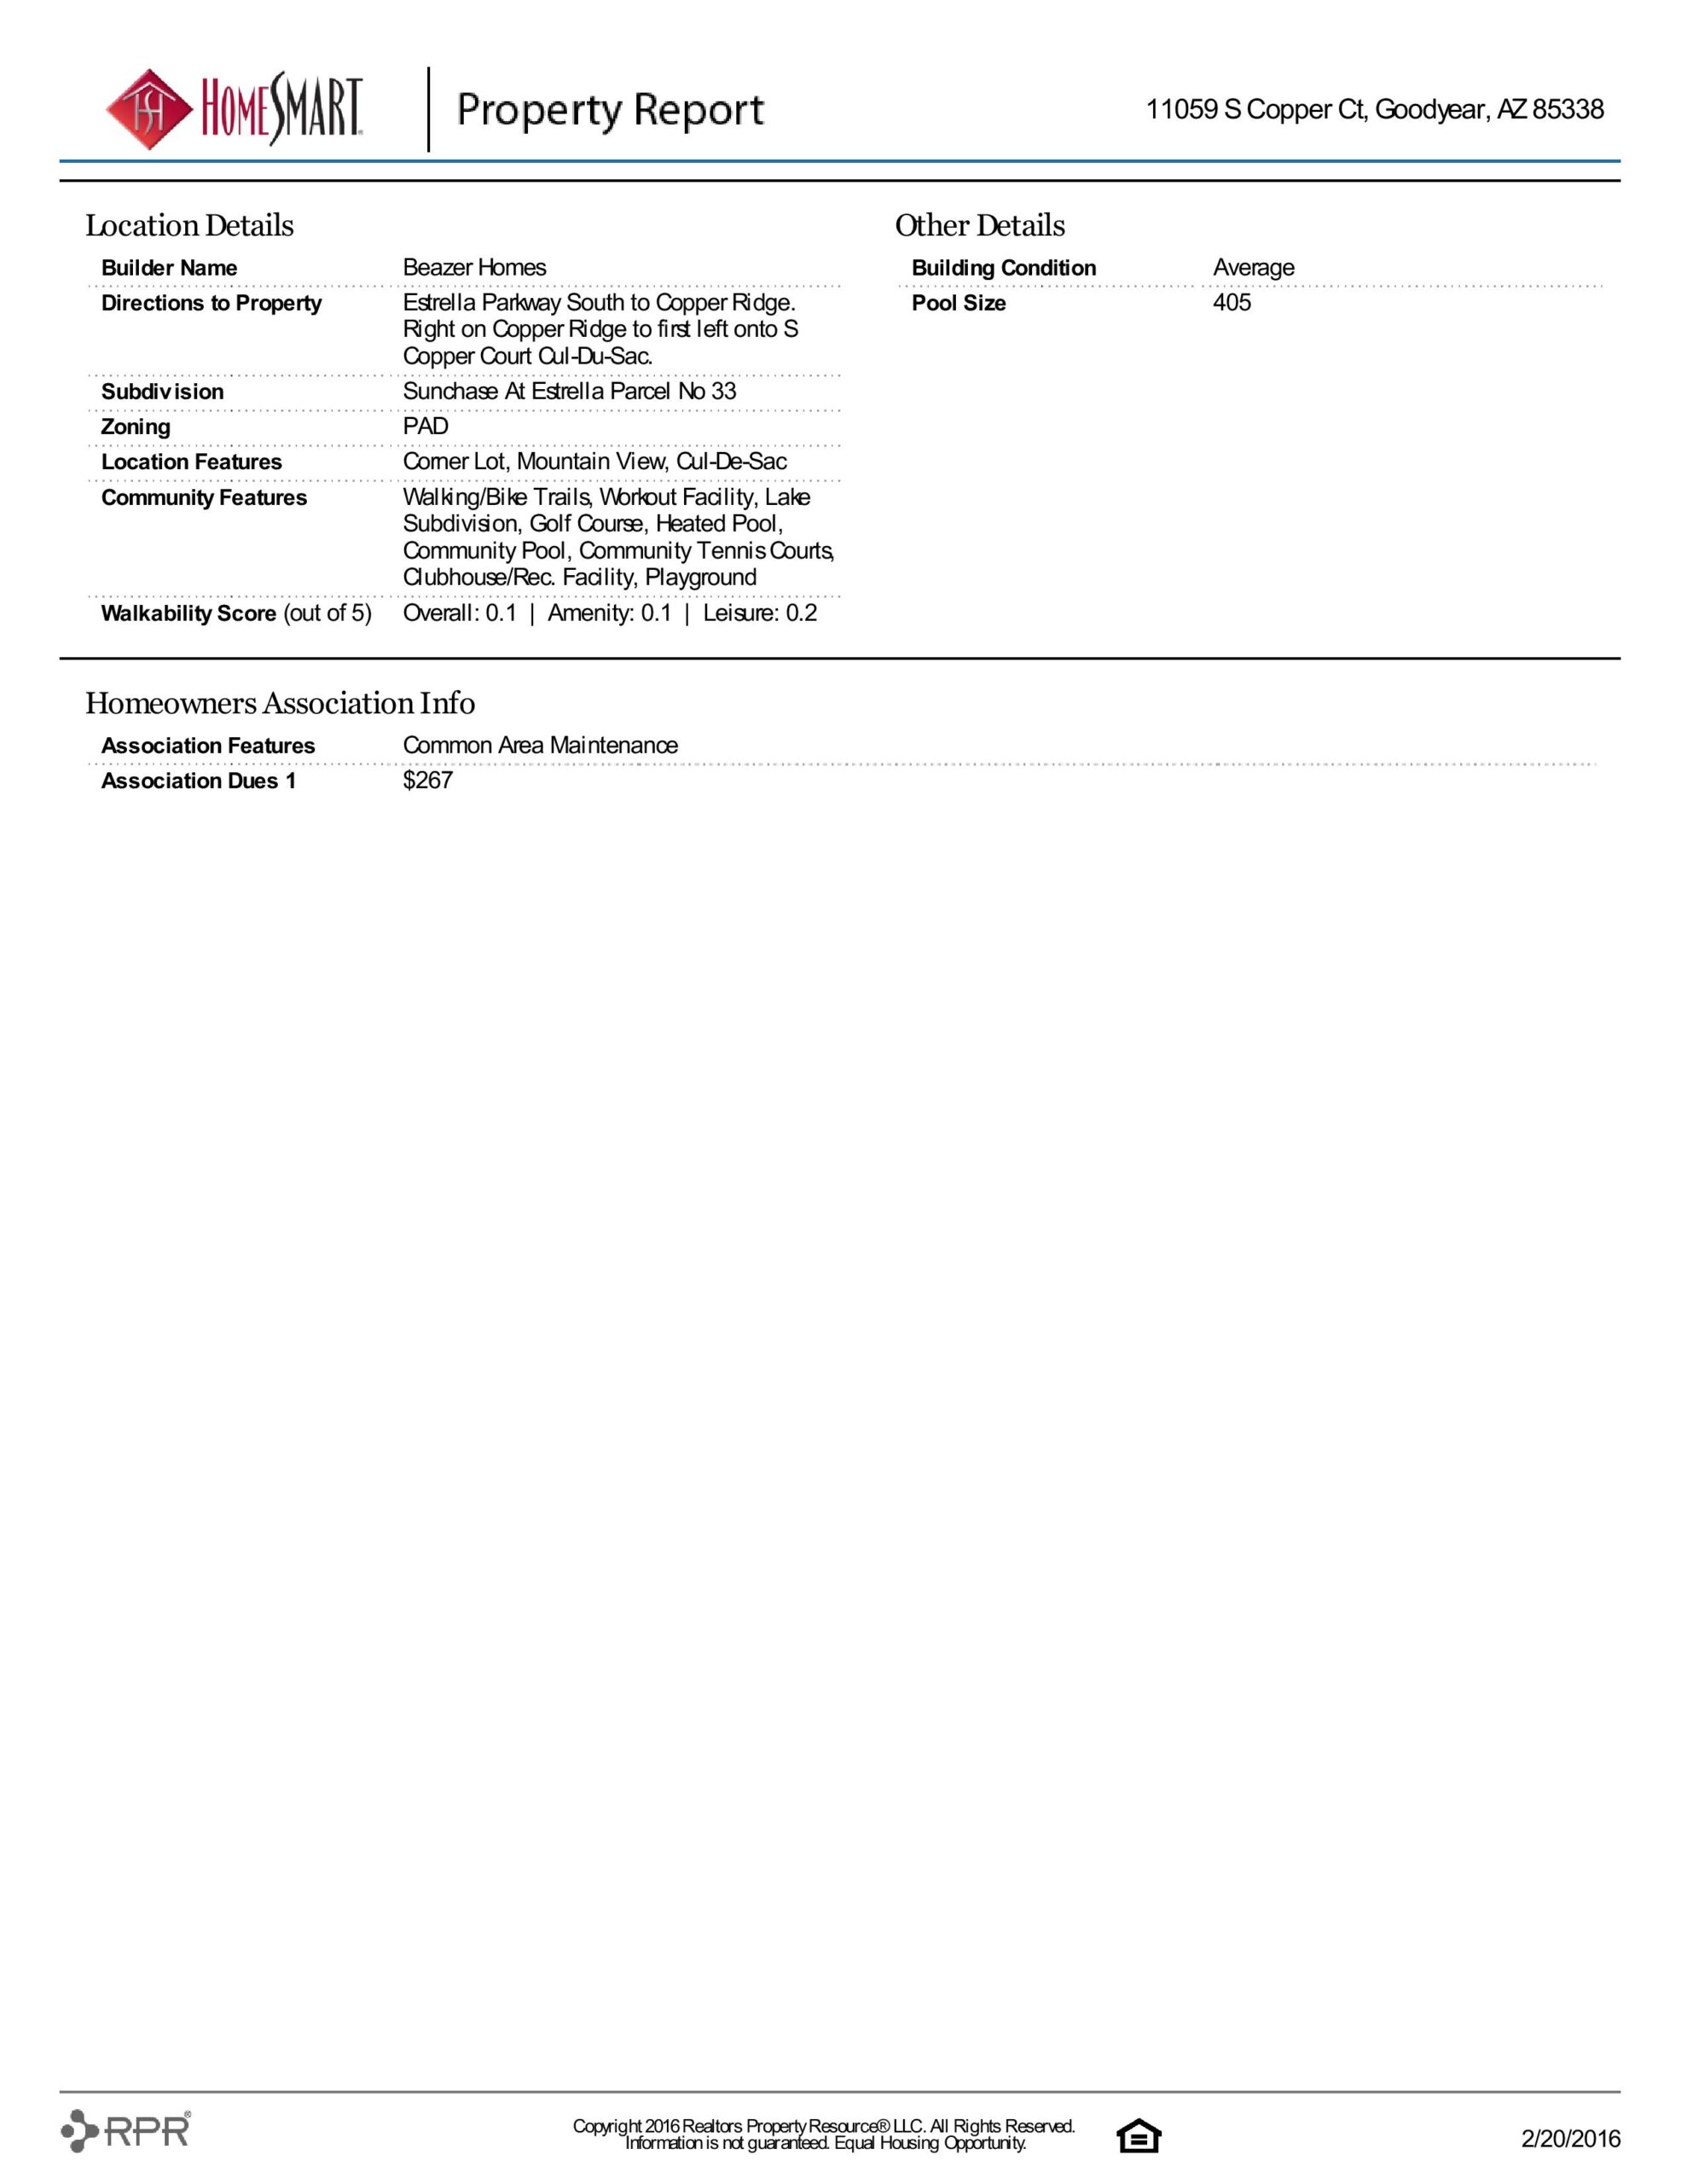 11059 S COPPER CT PROPERTY REPORT-page-005